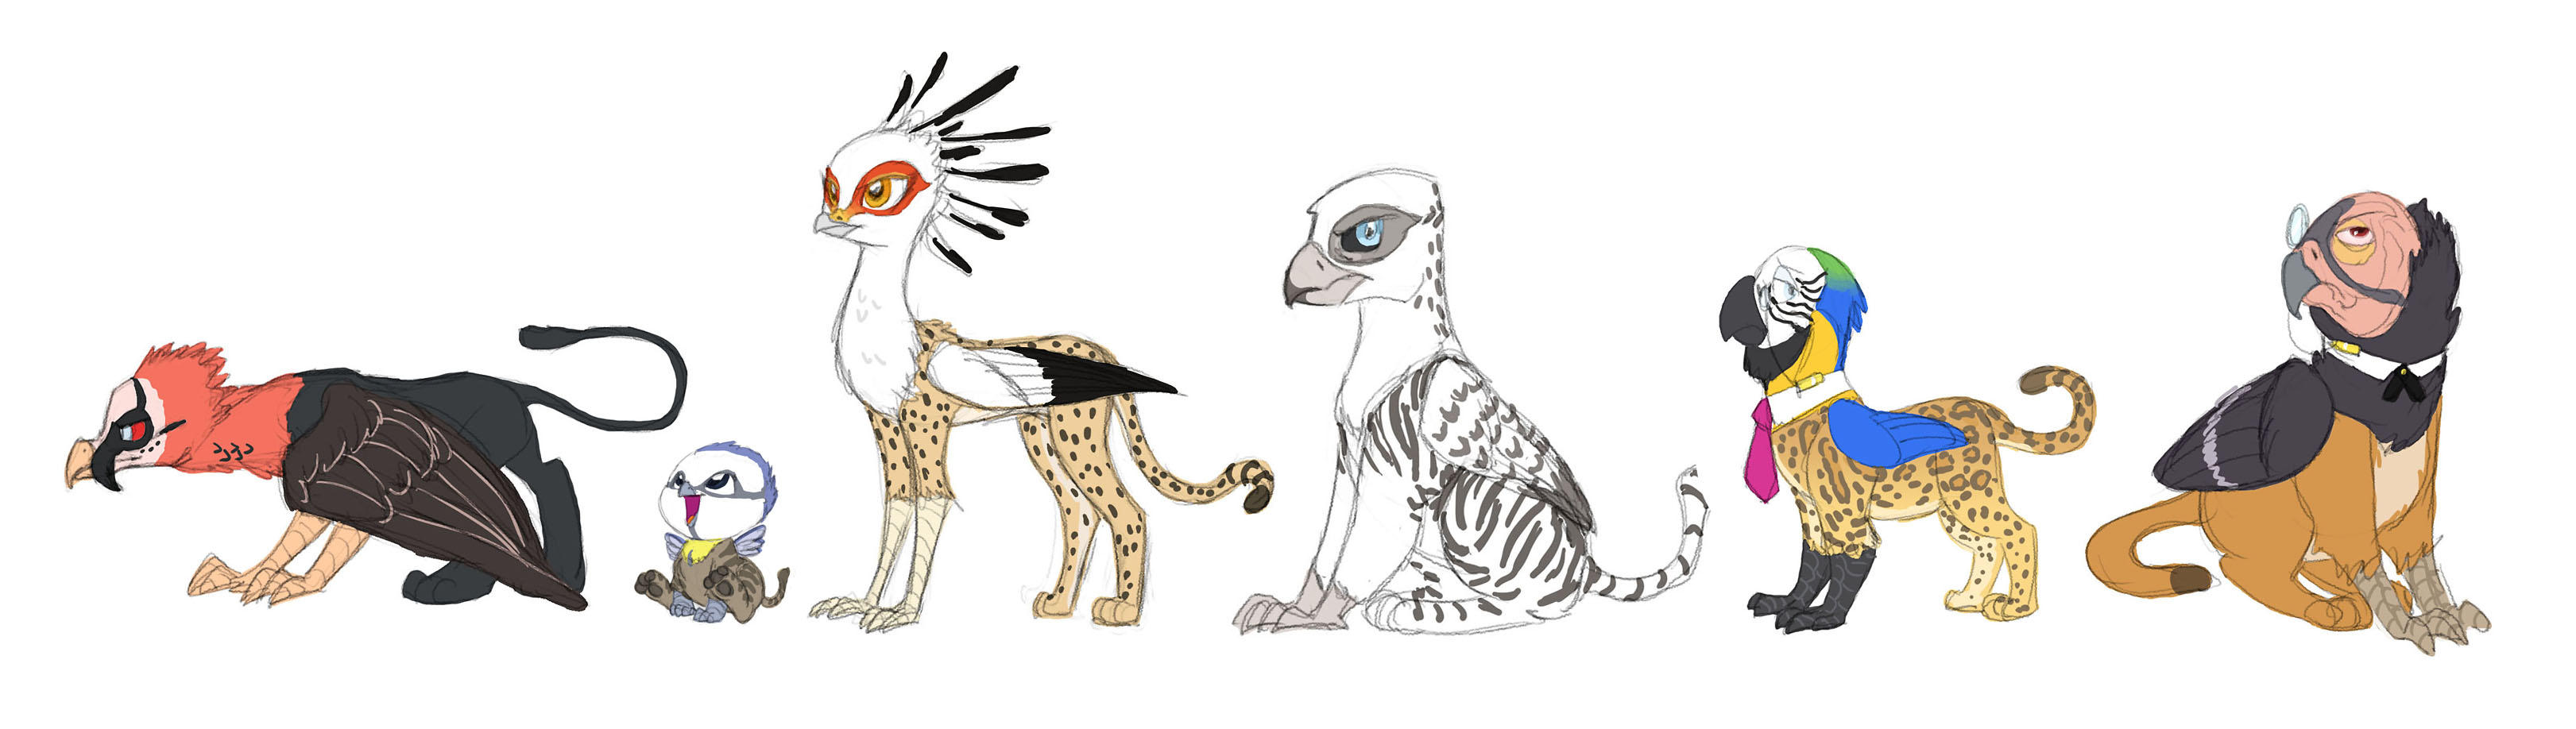 Griffin Concepts By Siansaar On Deviantart